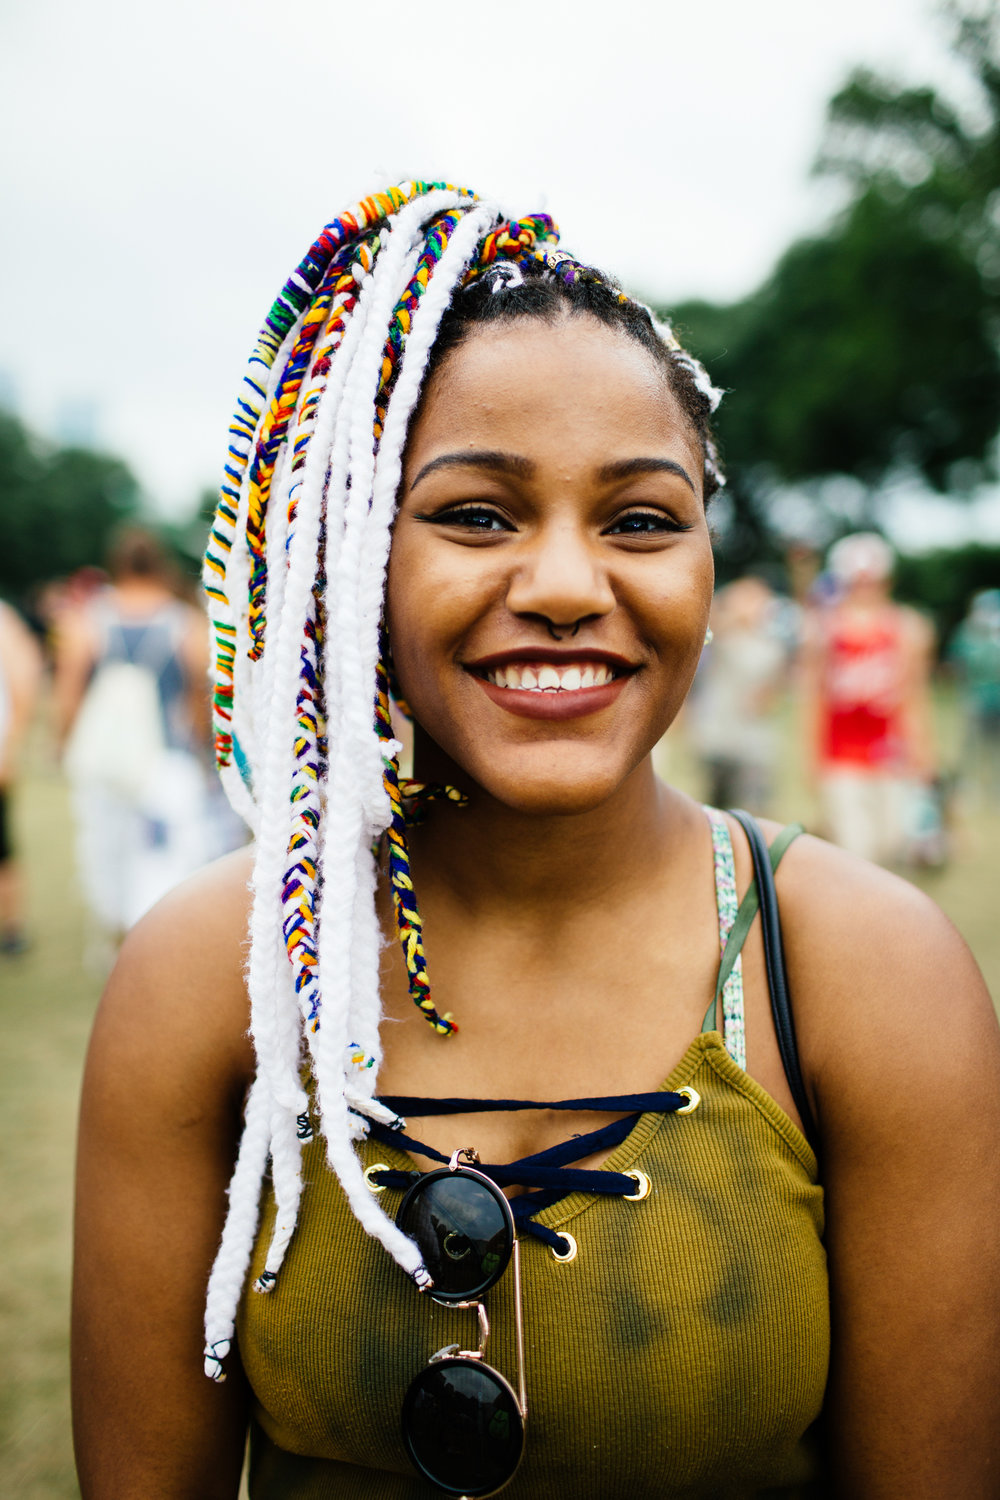 LOLLAPALOOZA STREET STYLE FOR BET 2016